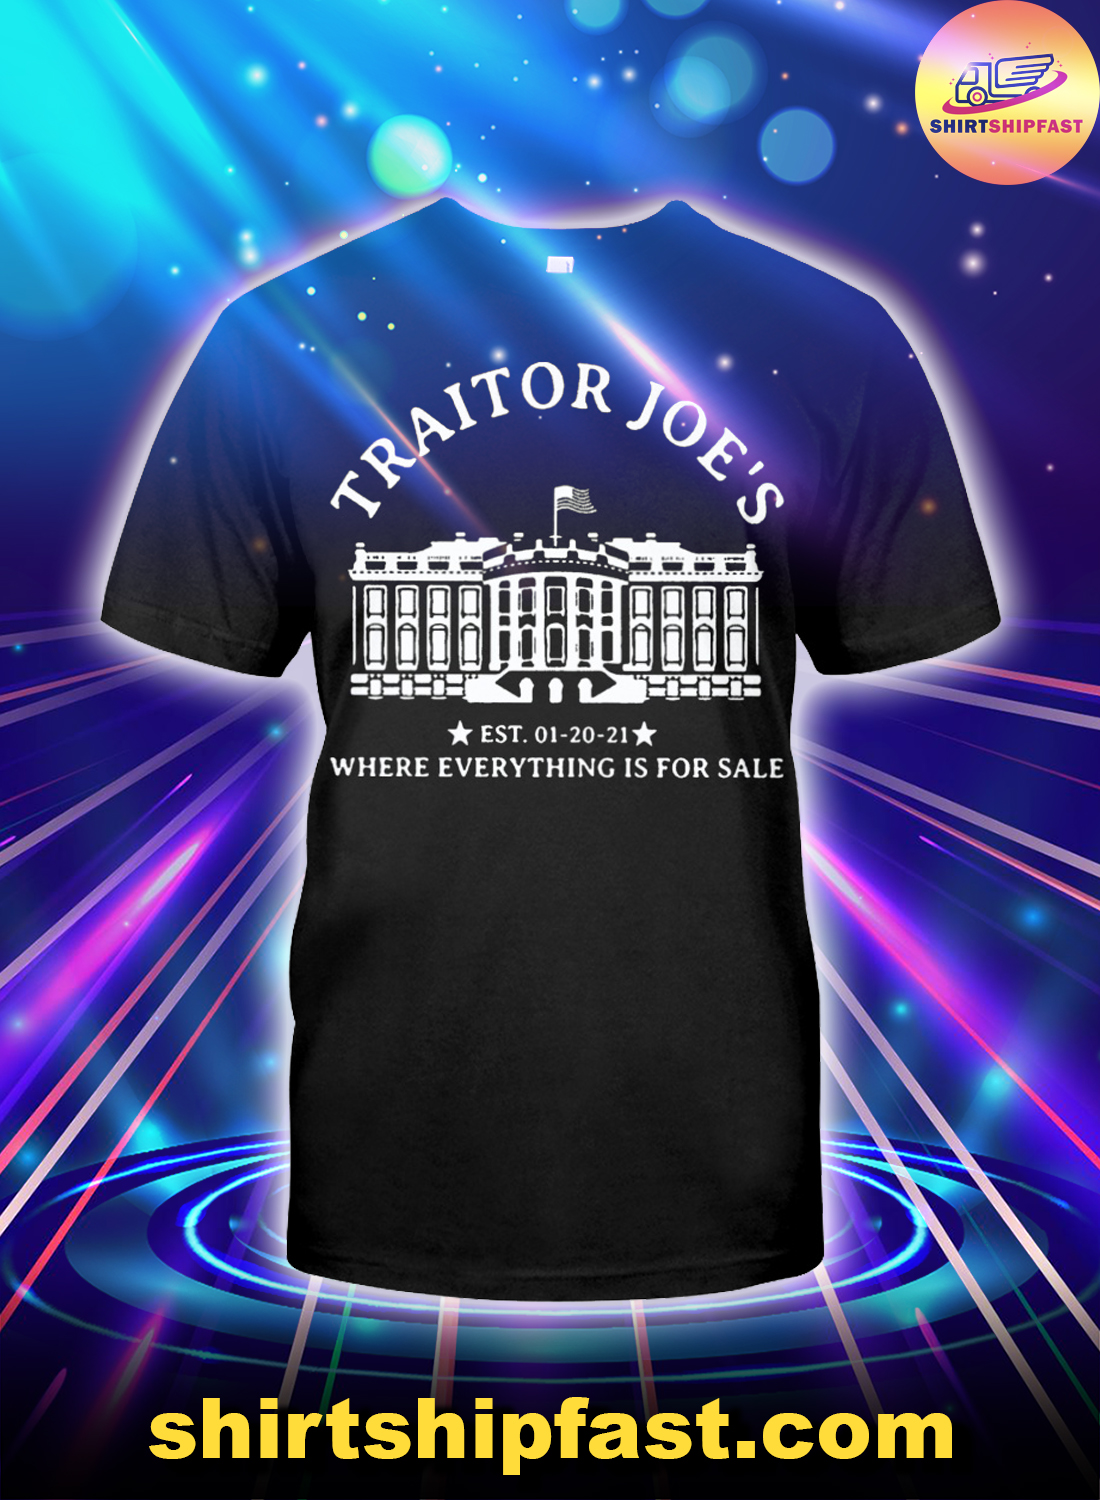 Traitor Joe's where everything is for sale shirt